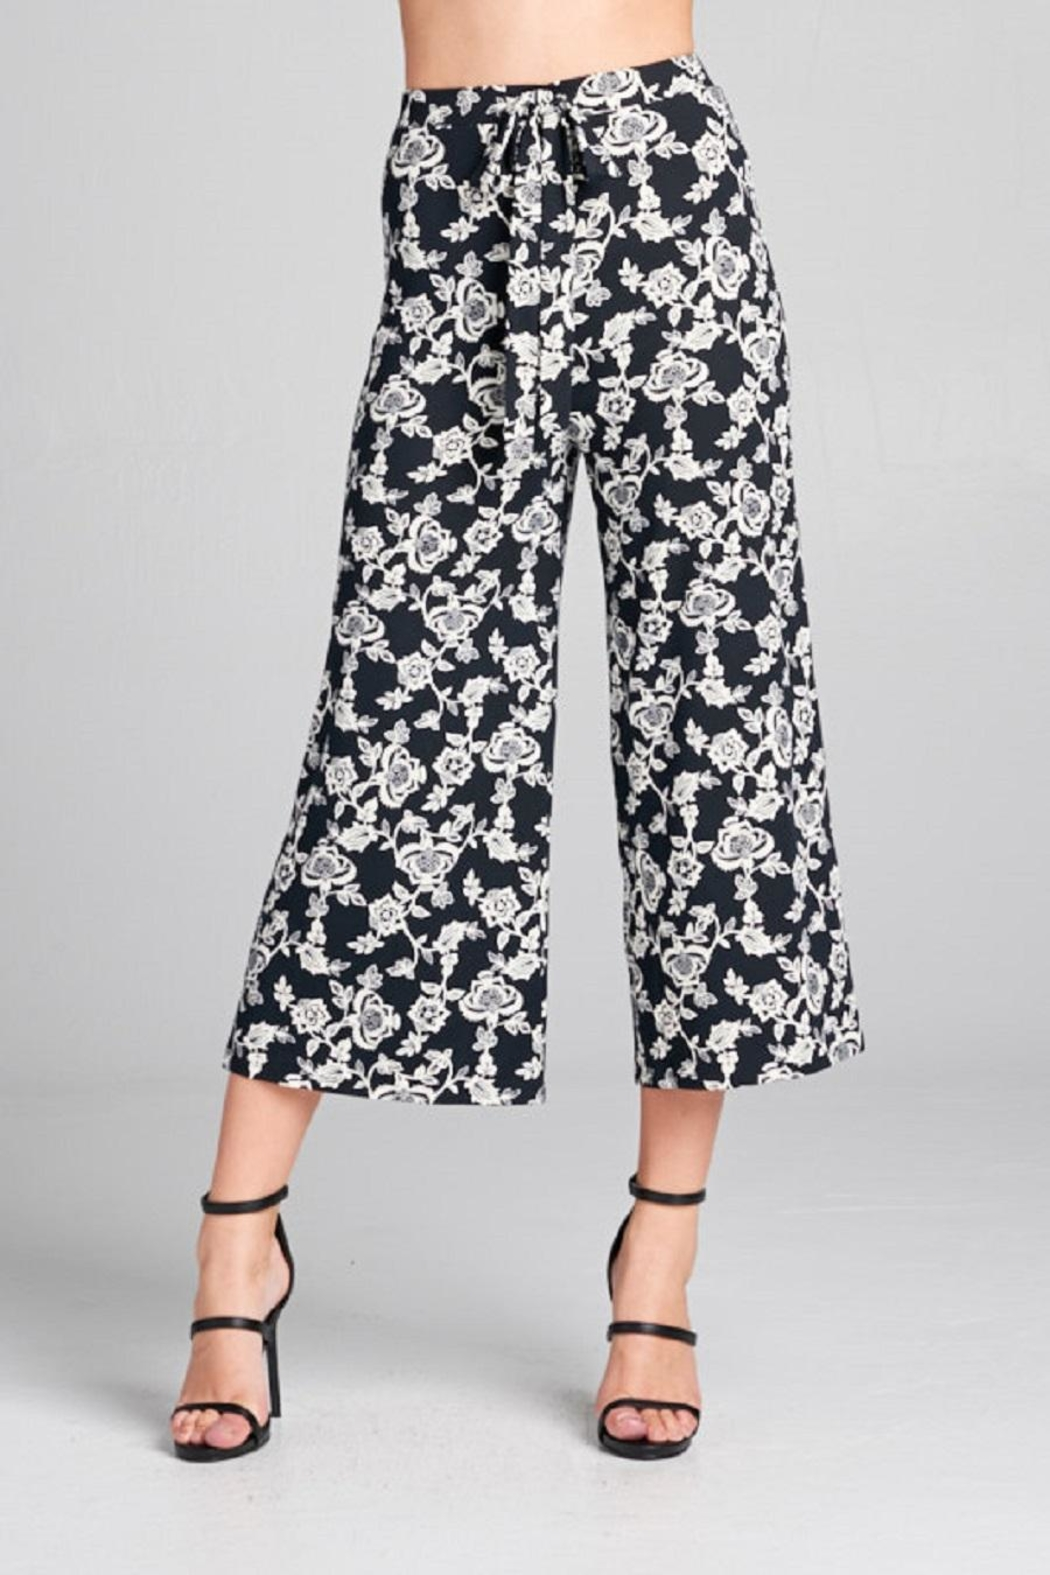 DNA Couture Flower Printed Pants - Front Full Image